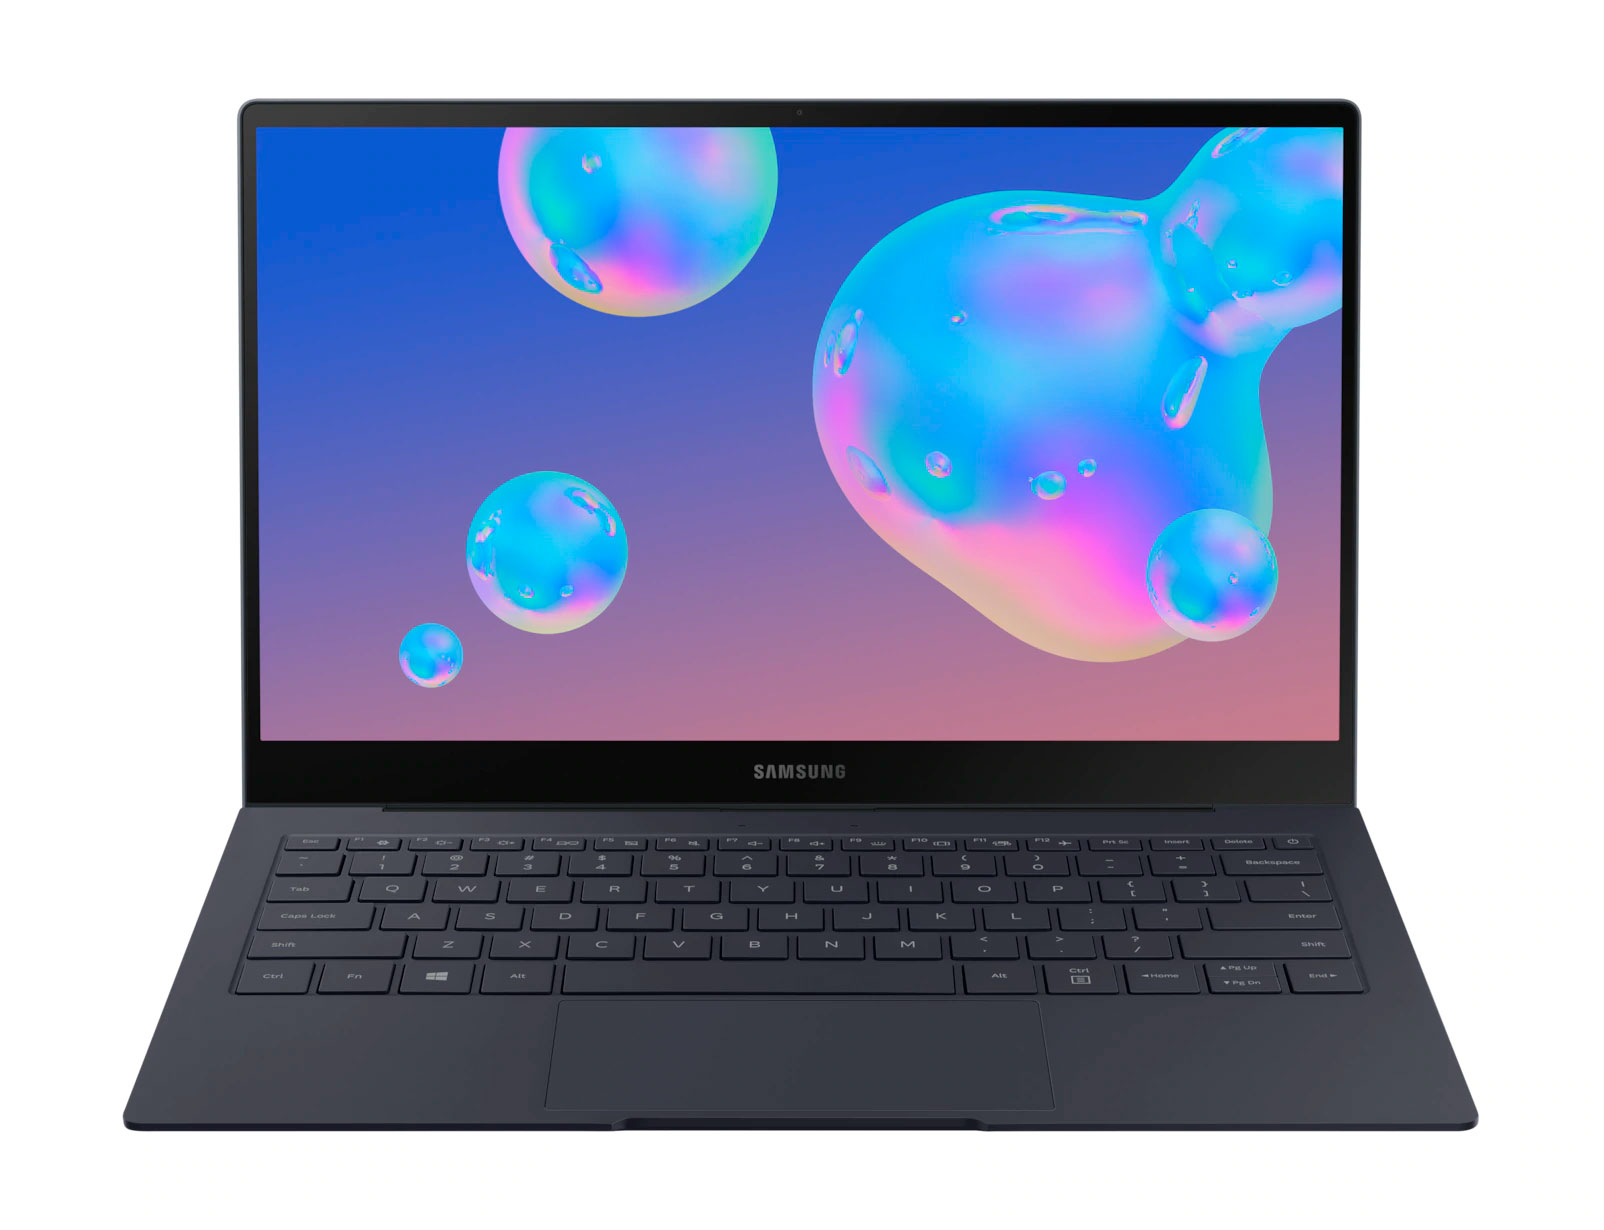 New Samsung Galaxy Book S Debuts With Intel Core i5-L16G7 Lakefield CPU